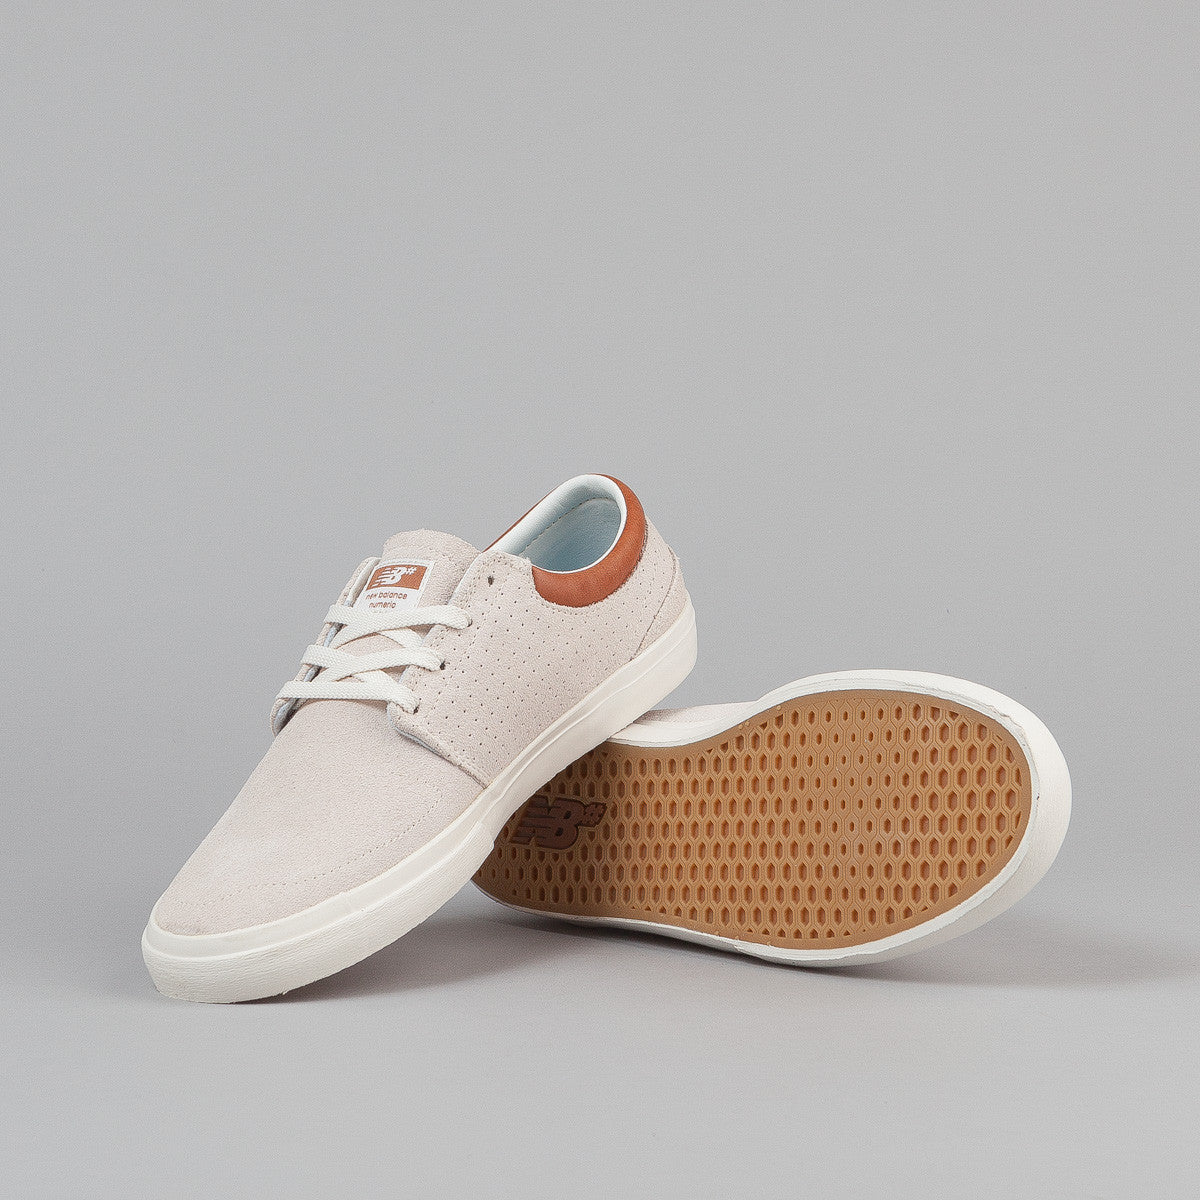 New Balance Numeric Brighton 344 Shoes - Cream